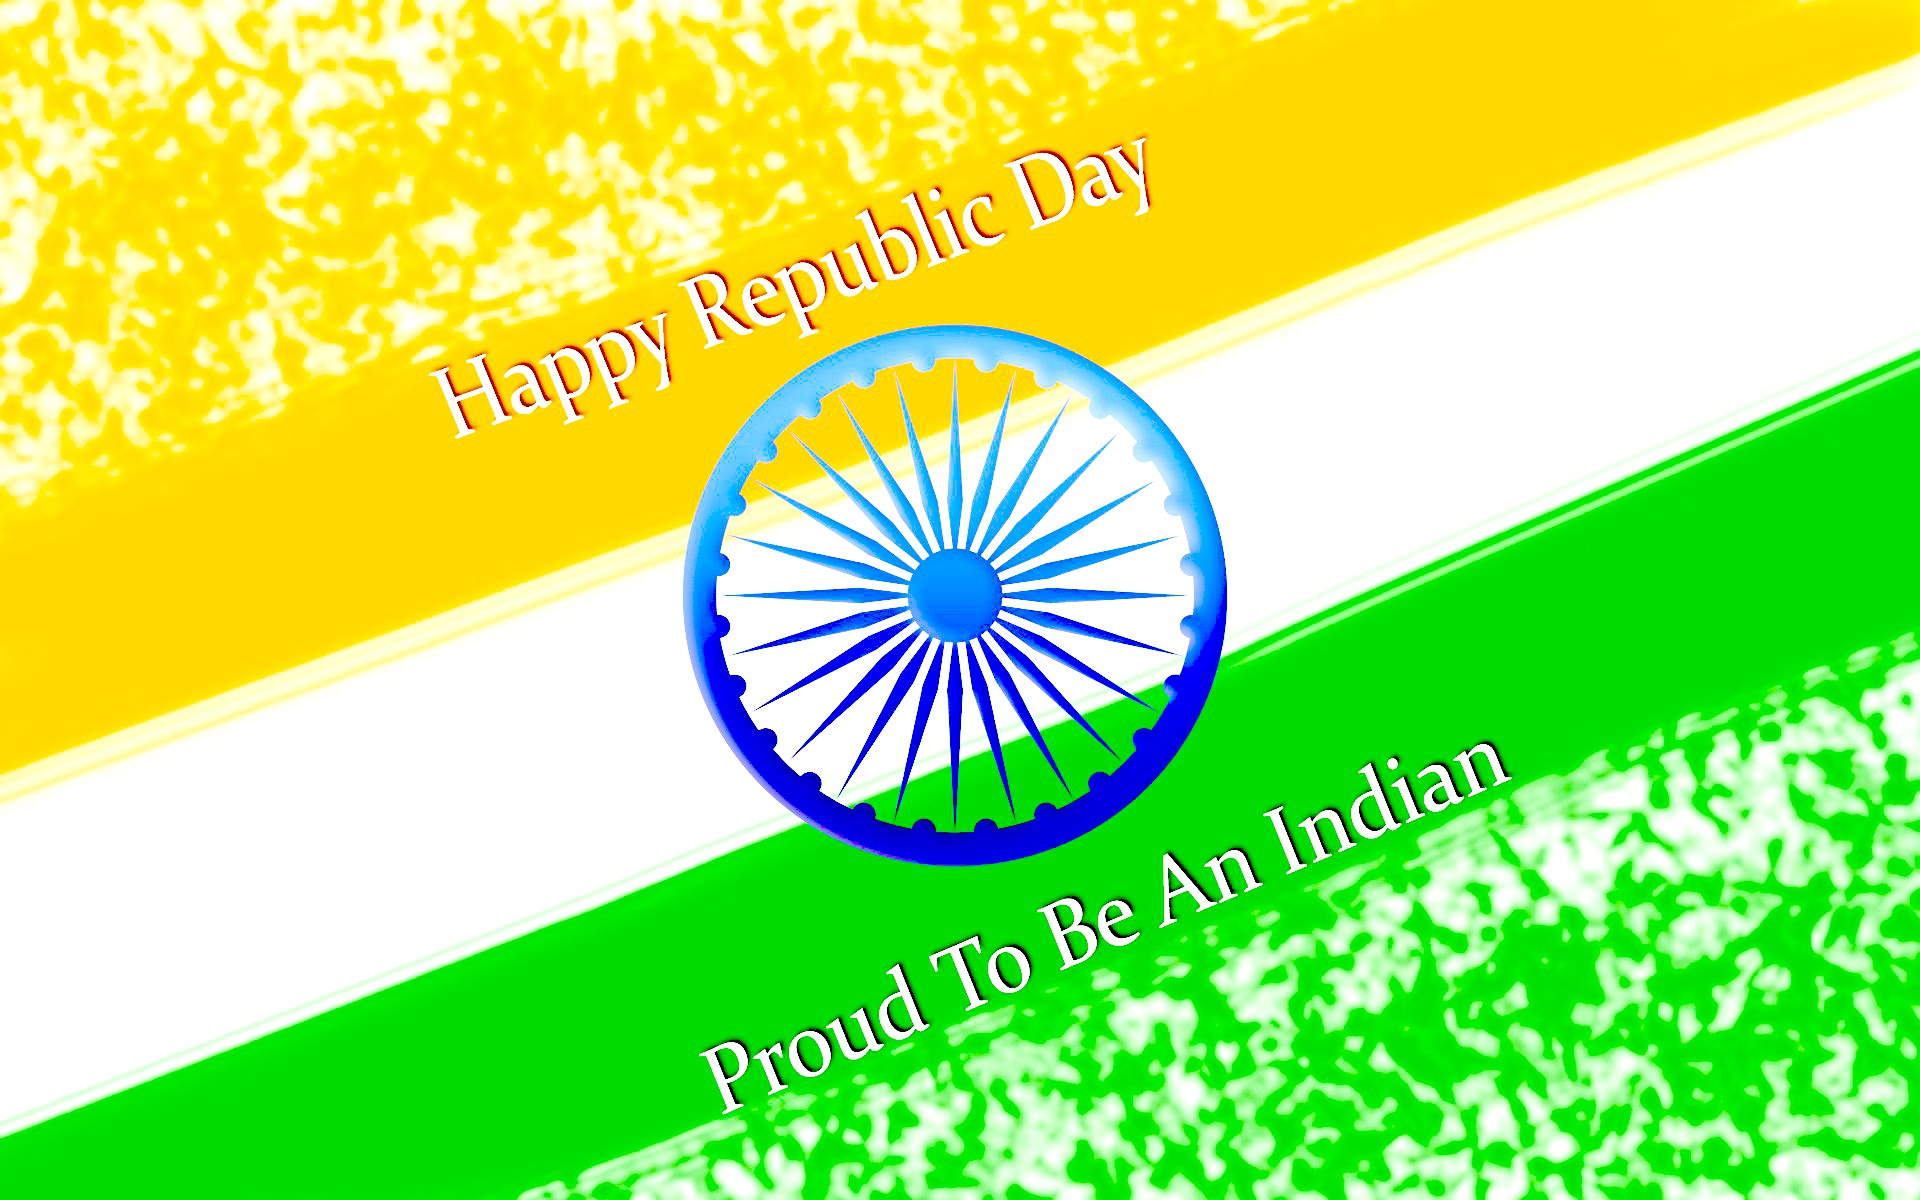 republic day of essay republic day essays for kids children  republic day images wishes essay for students republic day is celebrated to commemorate the efforts of